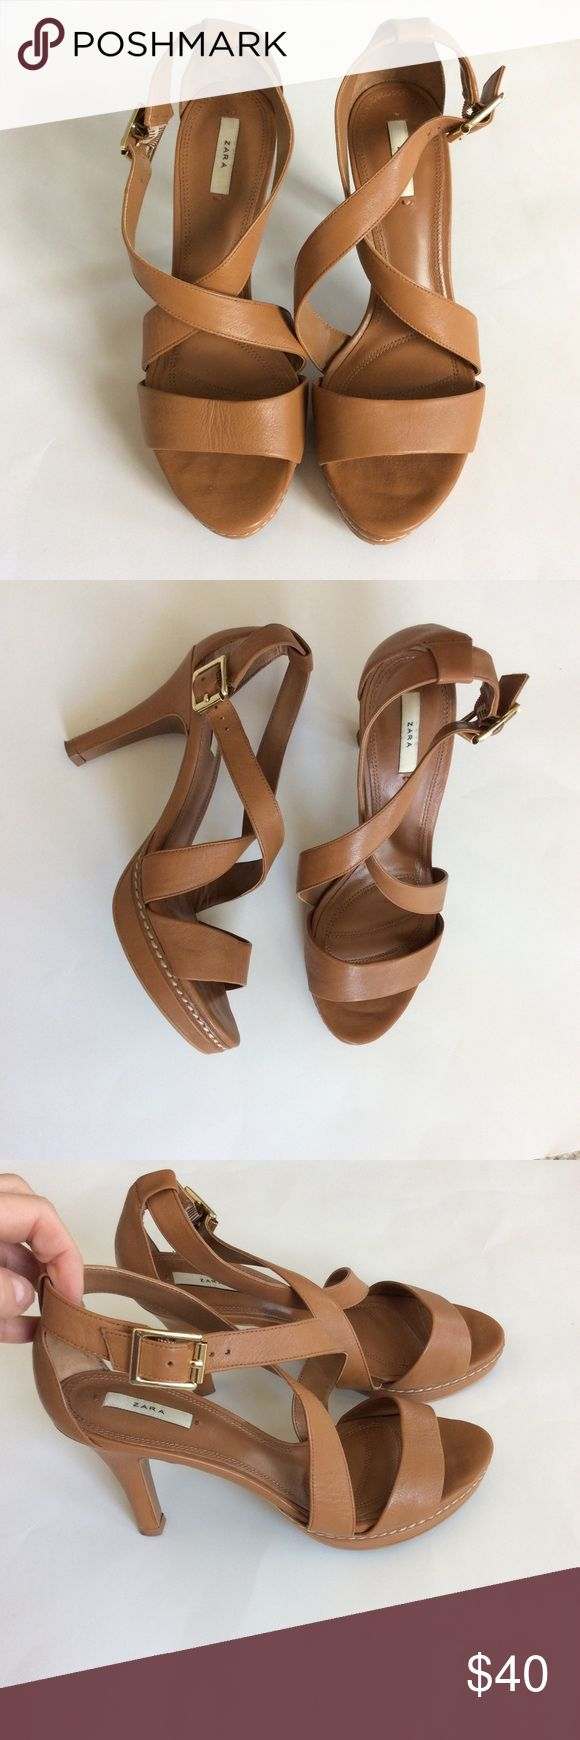 "Zara Strappy Heels Zara Strappy Heels. Gorgeous heels that can be worn with so many things. Great neutral tan color. Criss cross over the top of the foot. Side buckle. Approx 3/4"" platform with approx 3 3/4"" heel. Size 37. Excellent condition. Zara Shoes Heels"